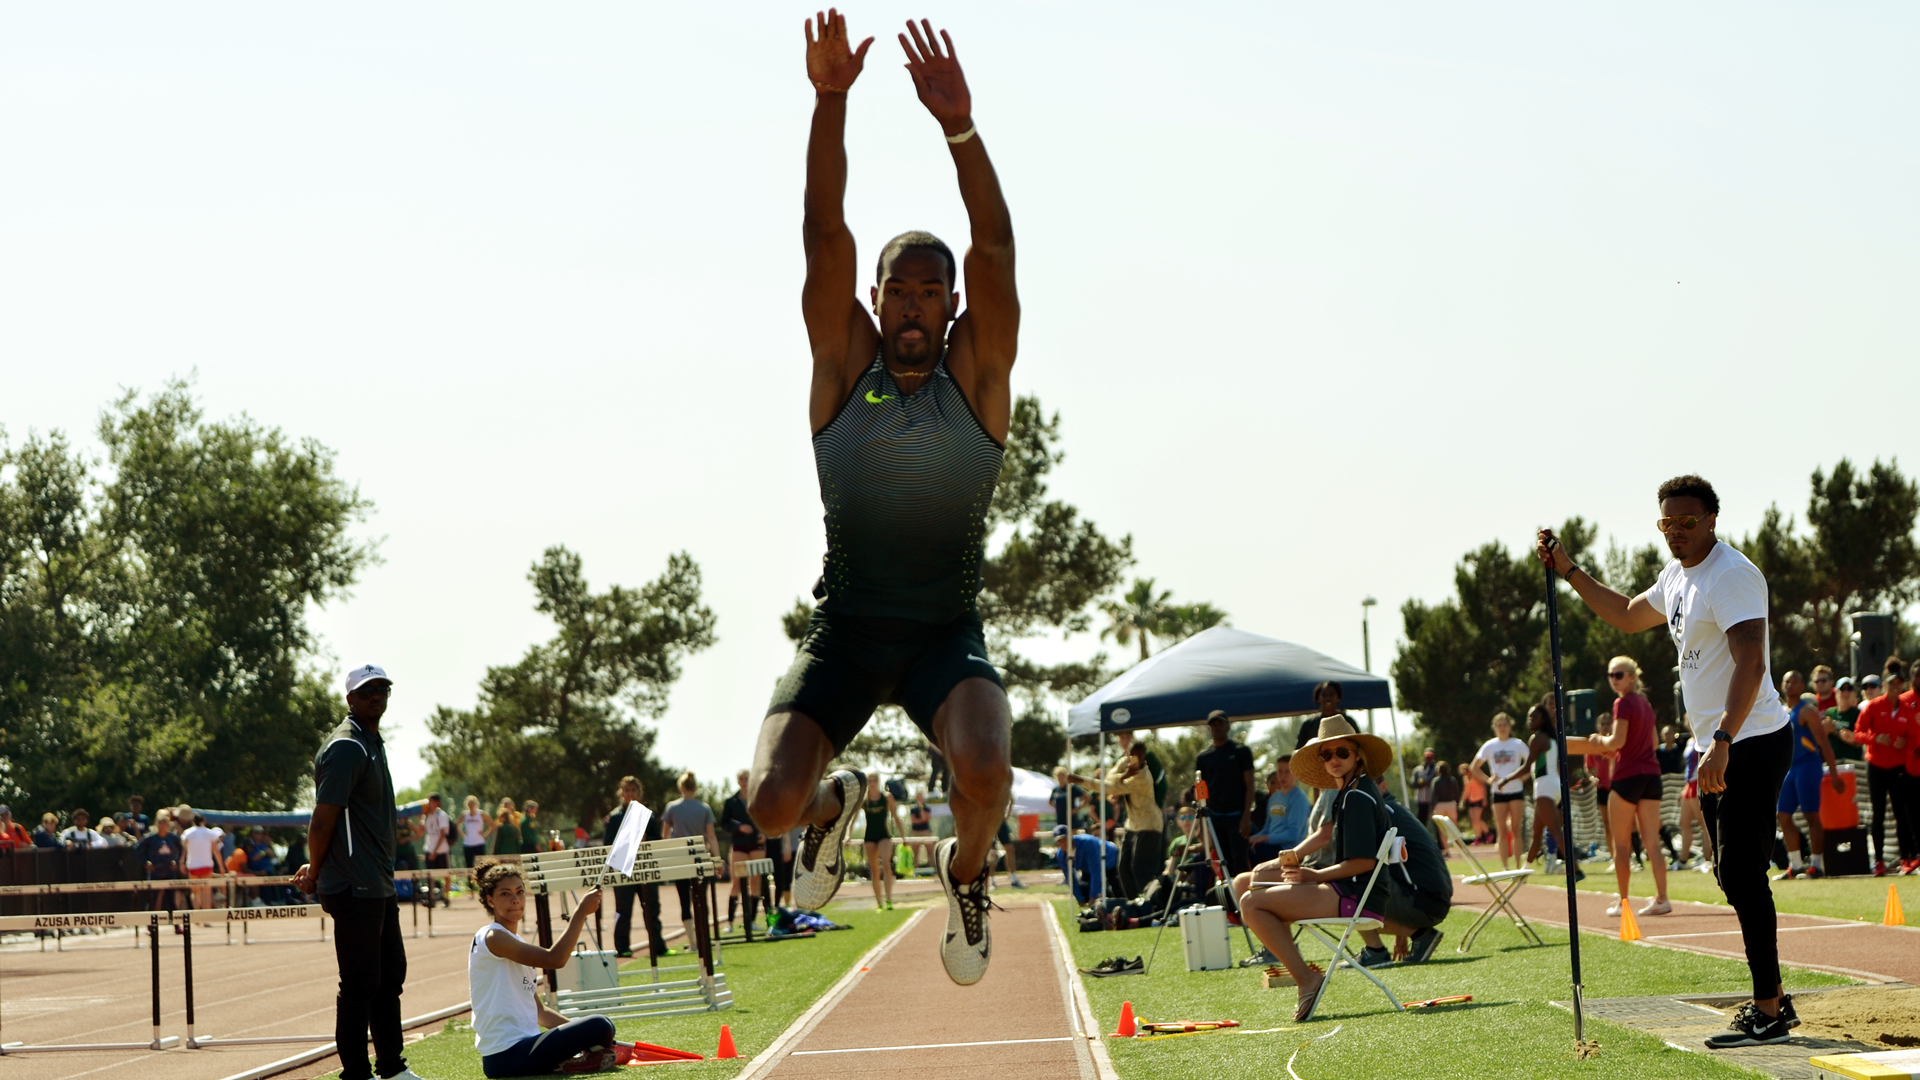 Christian Taylor won the triple jump at the 9th Annual Bryan Clay Invitational on April 14